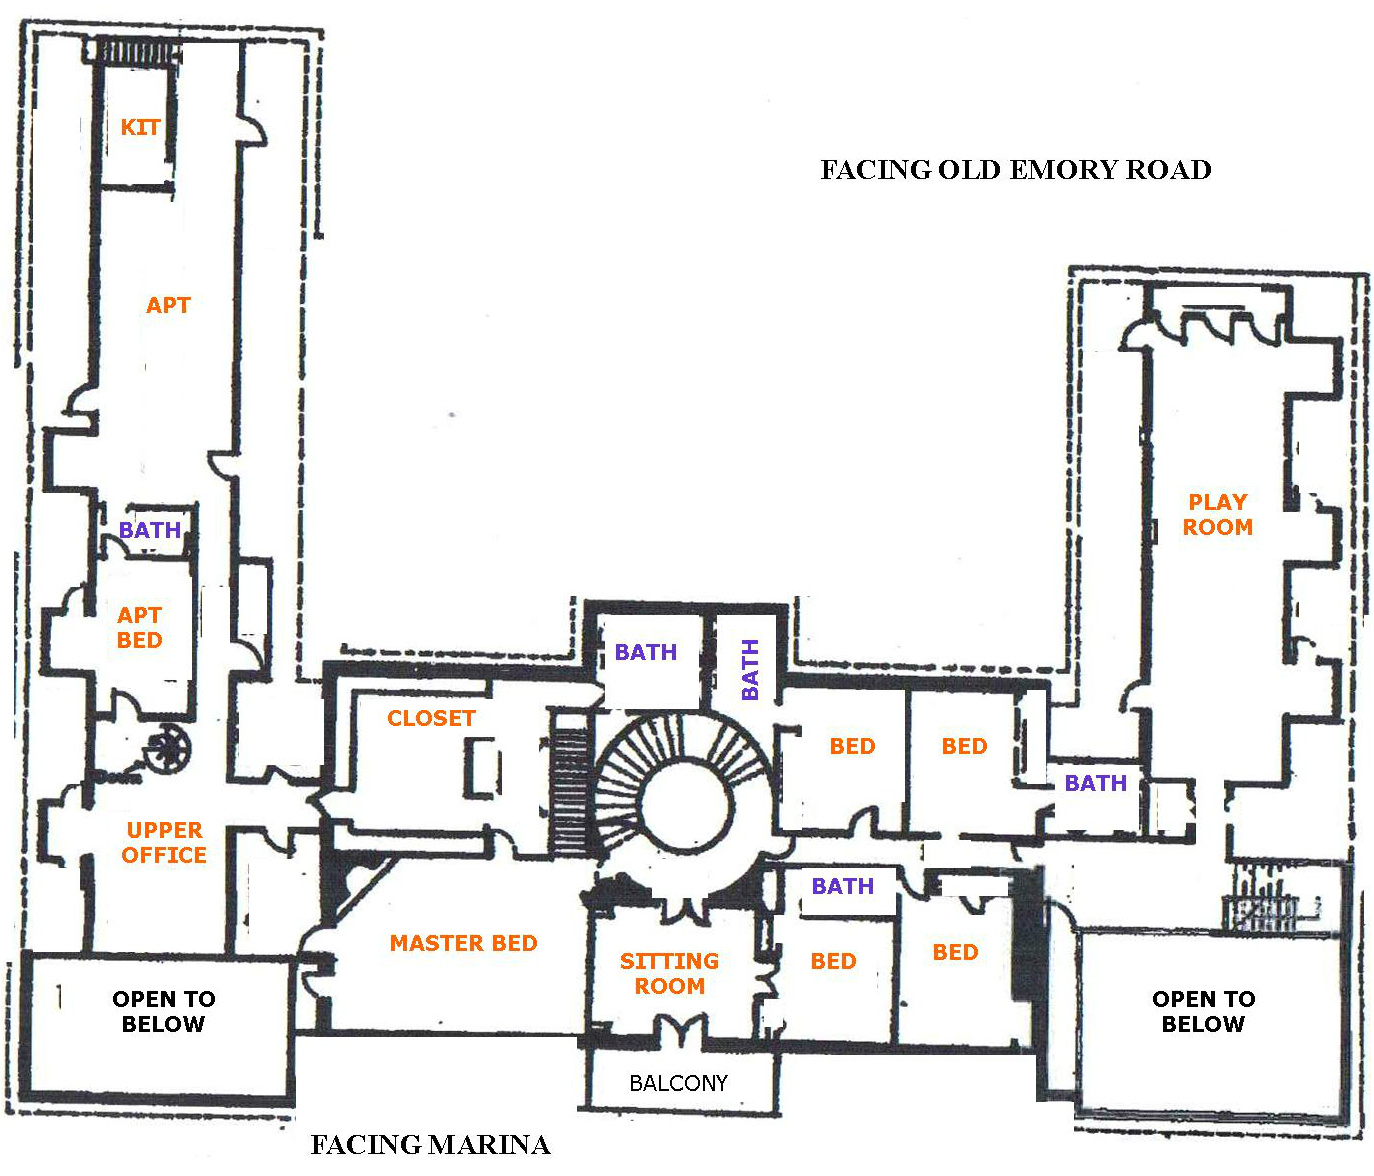 182 Whirlwind Lane: Original Floorplan For The Butcher